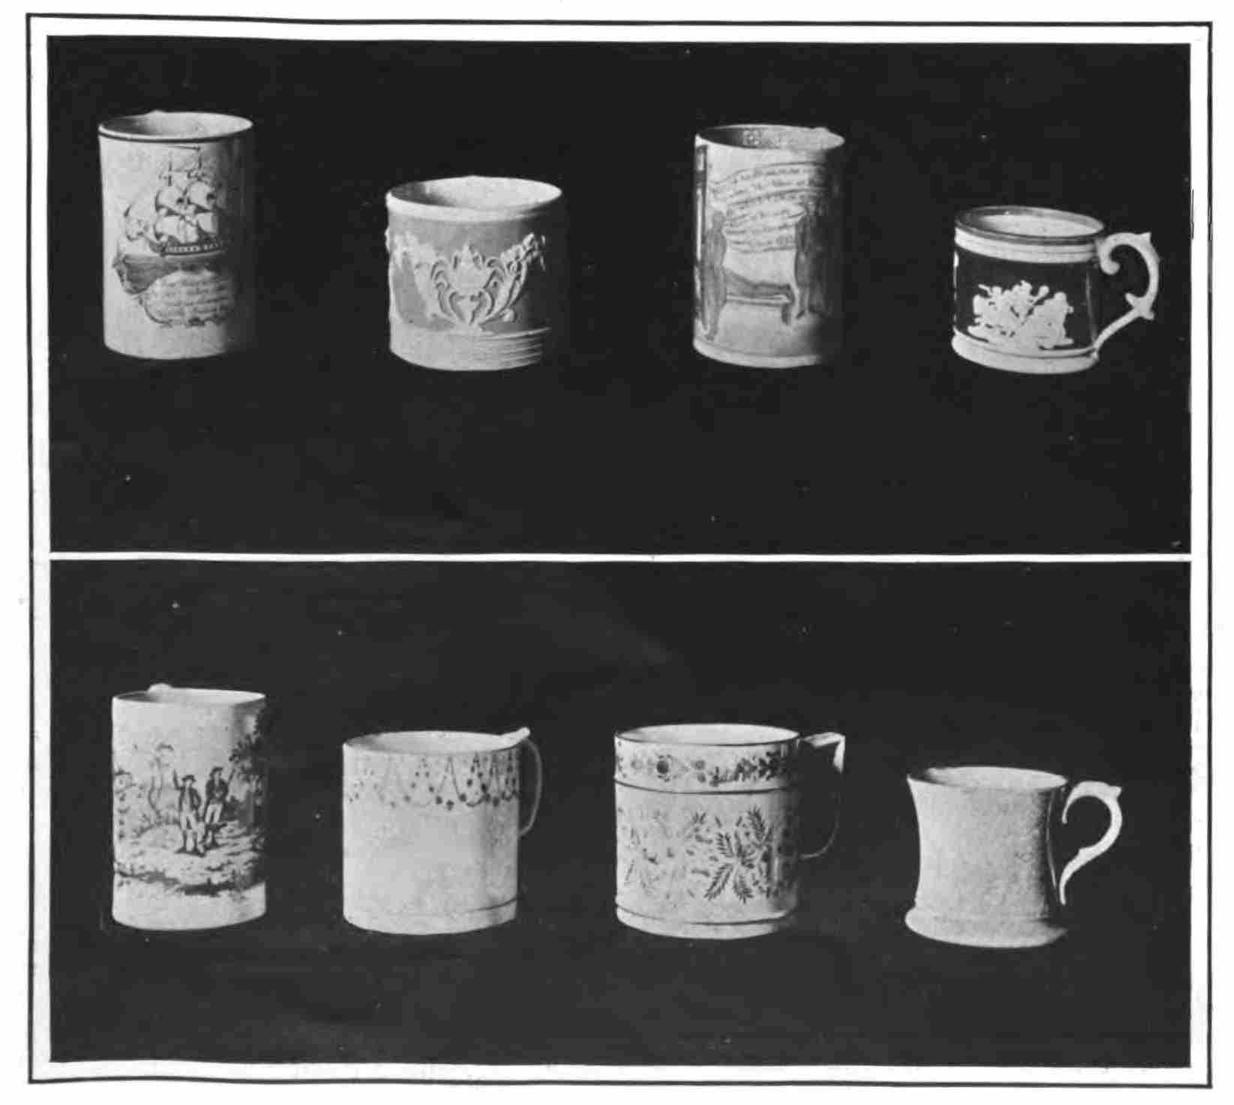 English 18th century cider cups